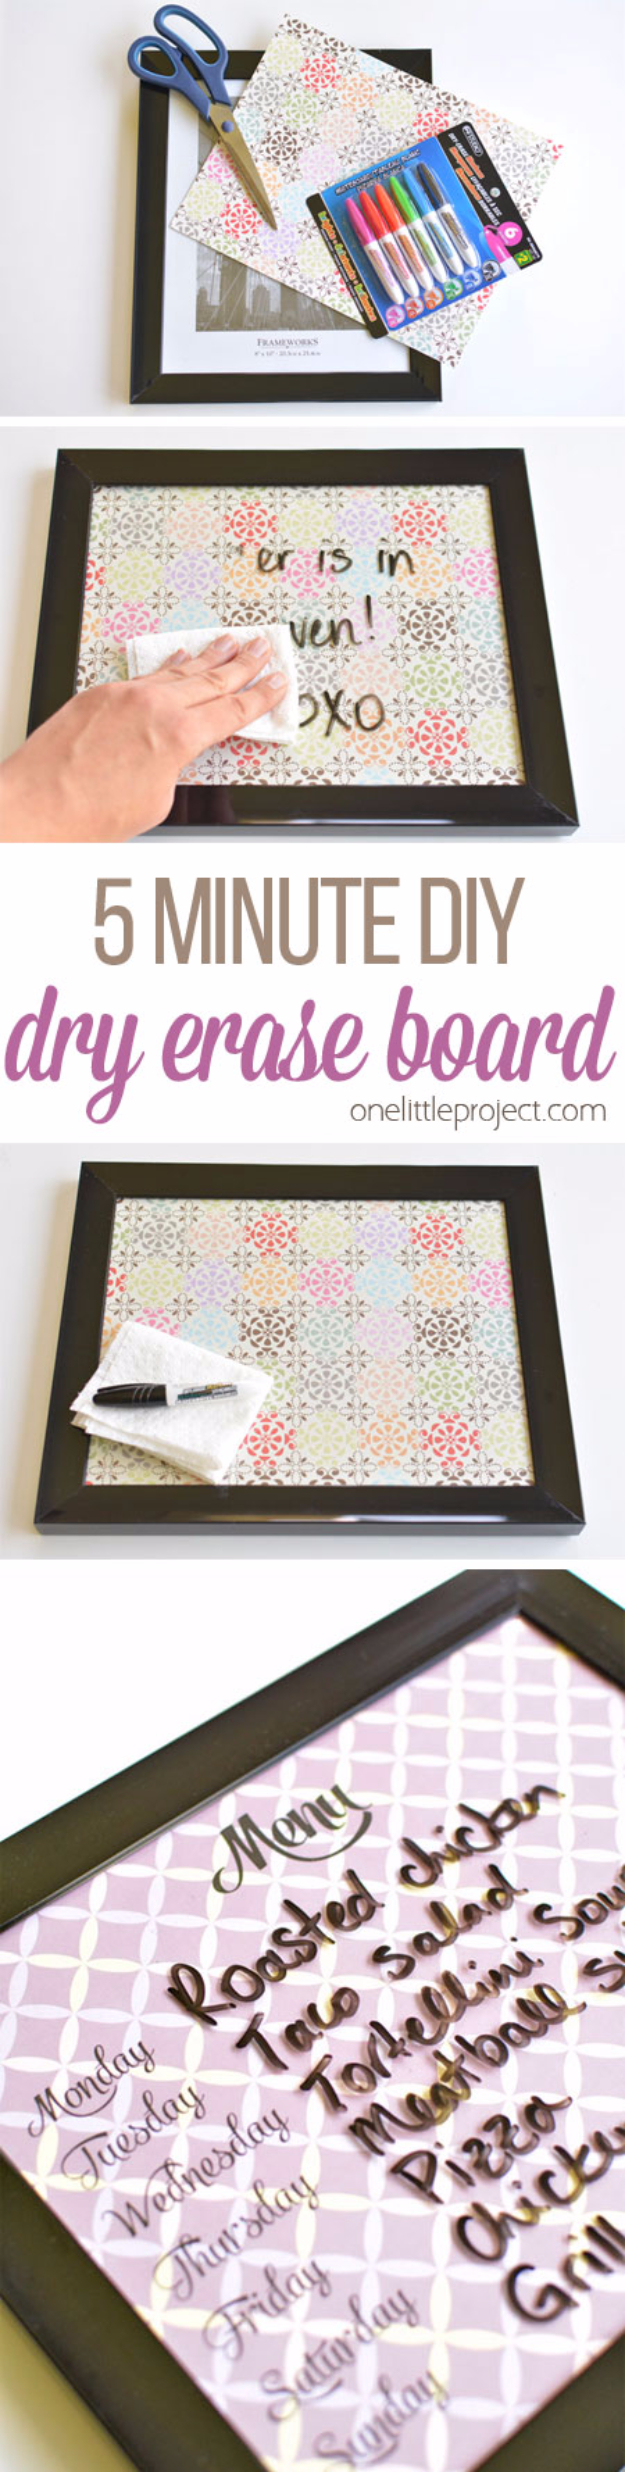 Easy DIY Projects - Easy DIY Whiteboards - Easy DIY Crafts and Projects - Simple Craft Ideas for Beginners, Cool Crafts To Make and Sell, Simple Home Decor, Fast DIY Gifts, Cheap and Quick Project Tutorials #diy #crafts #easycrafts